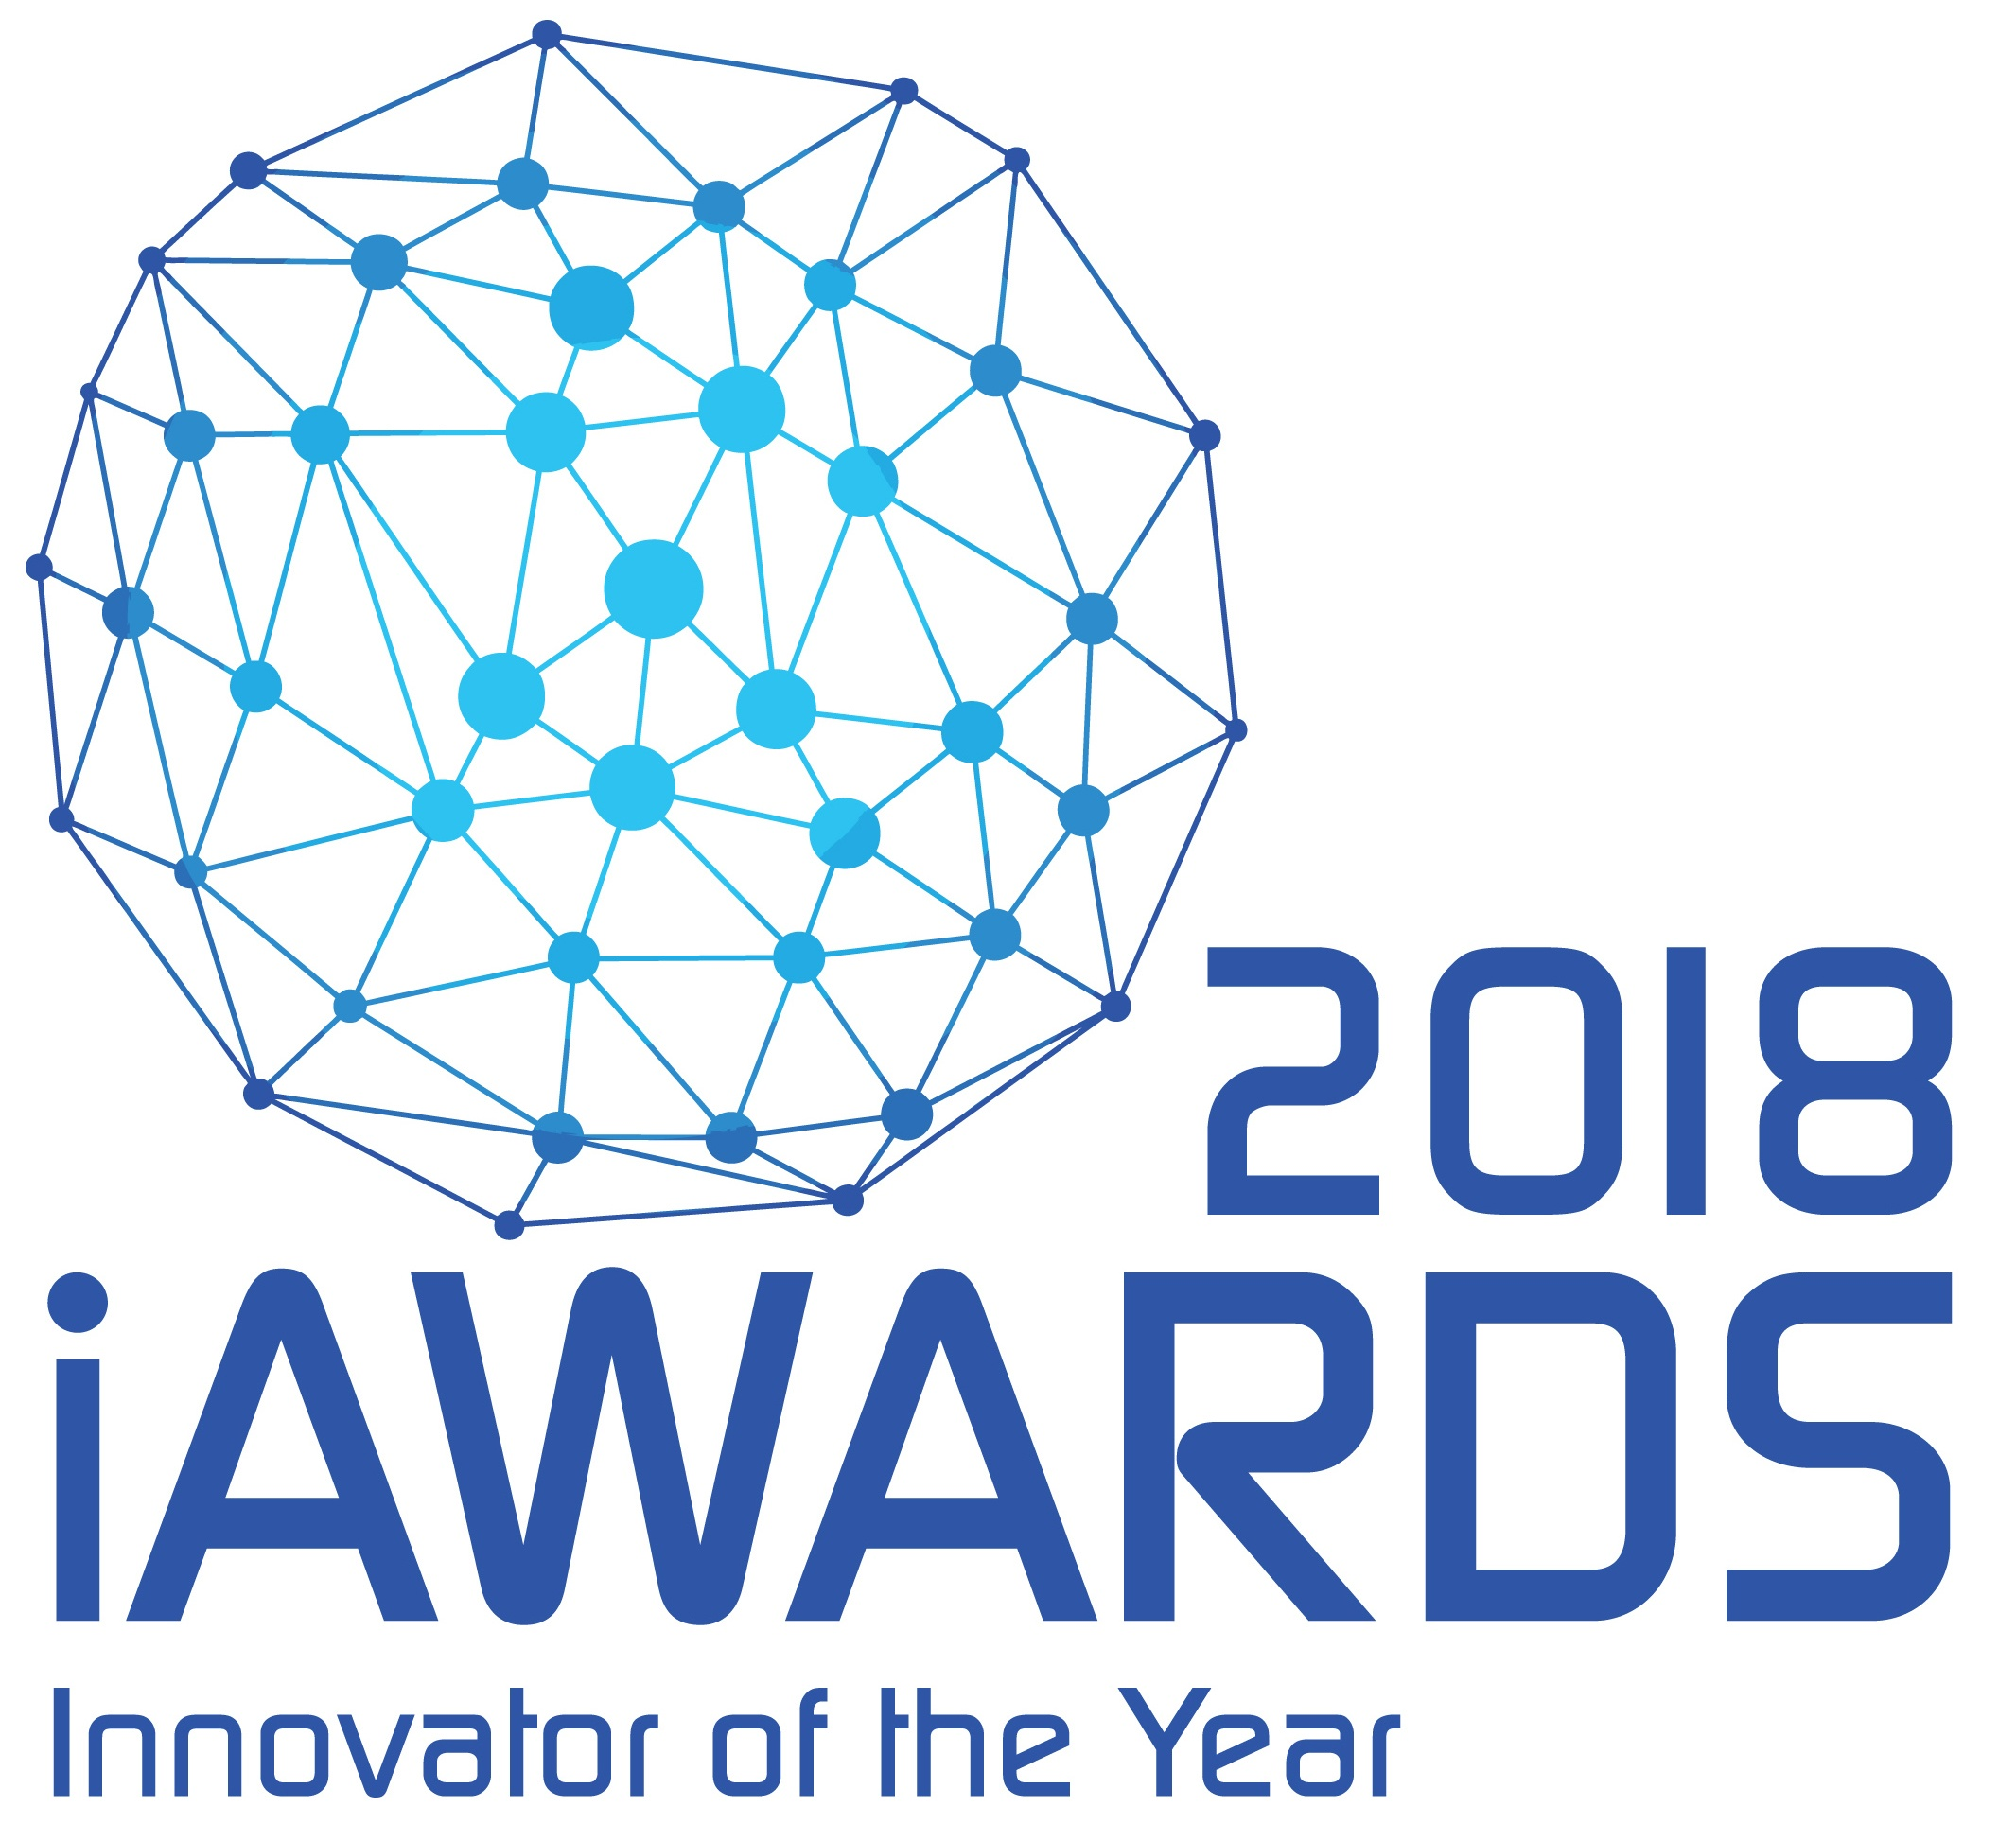 iawards